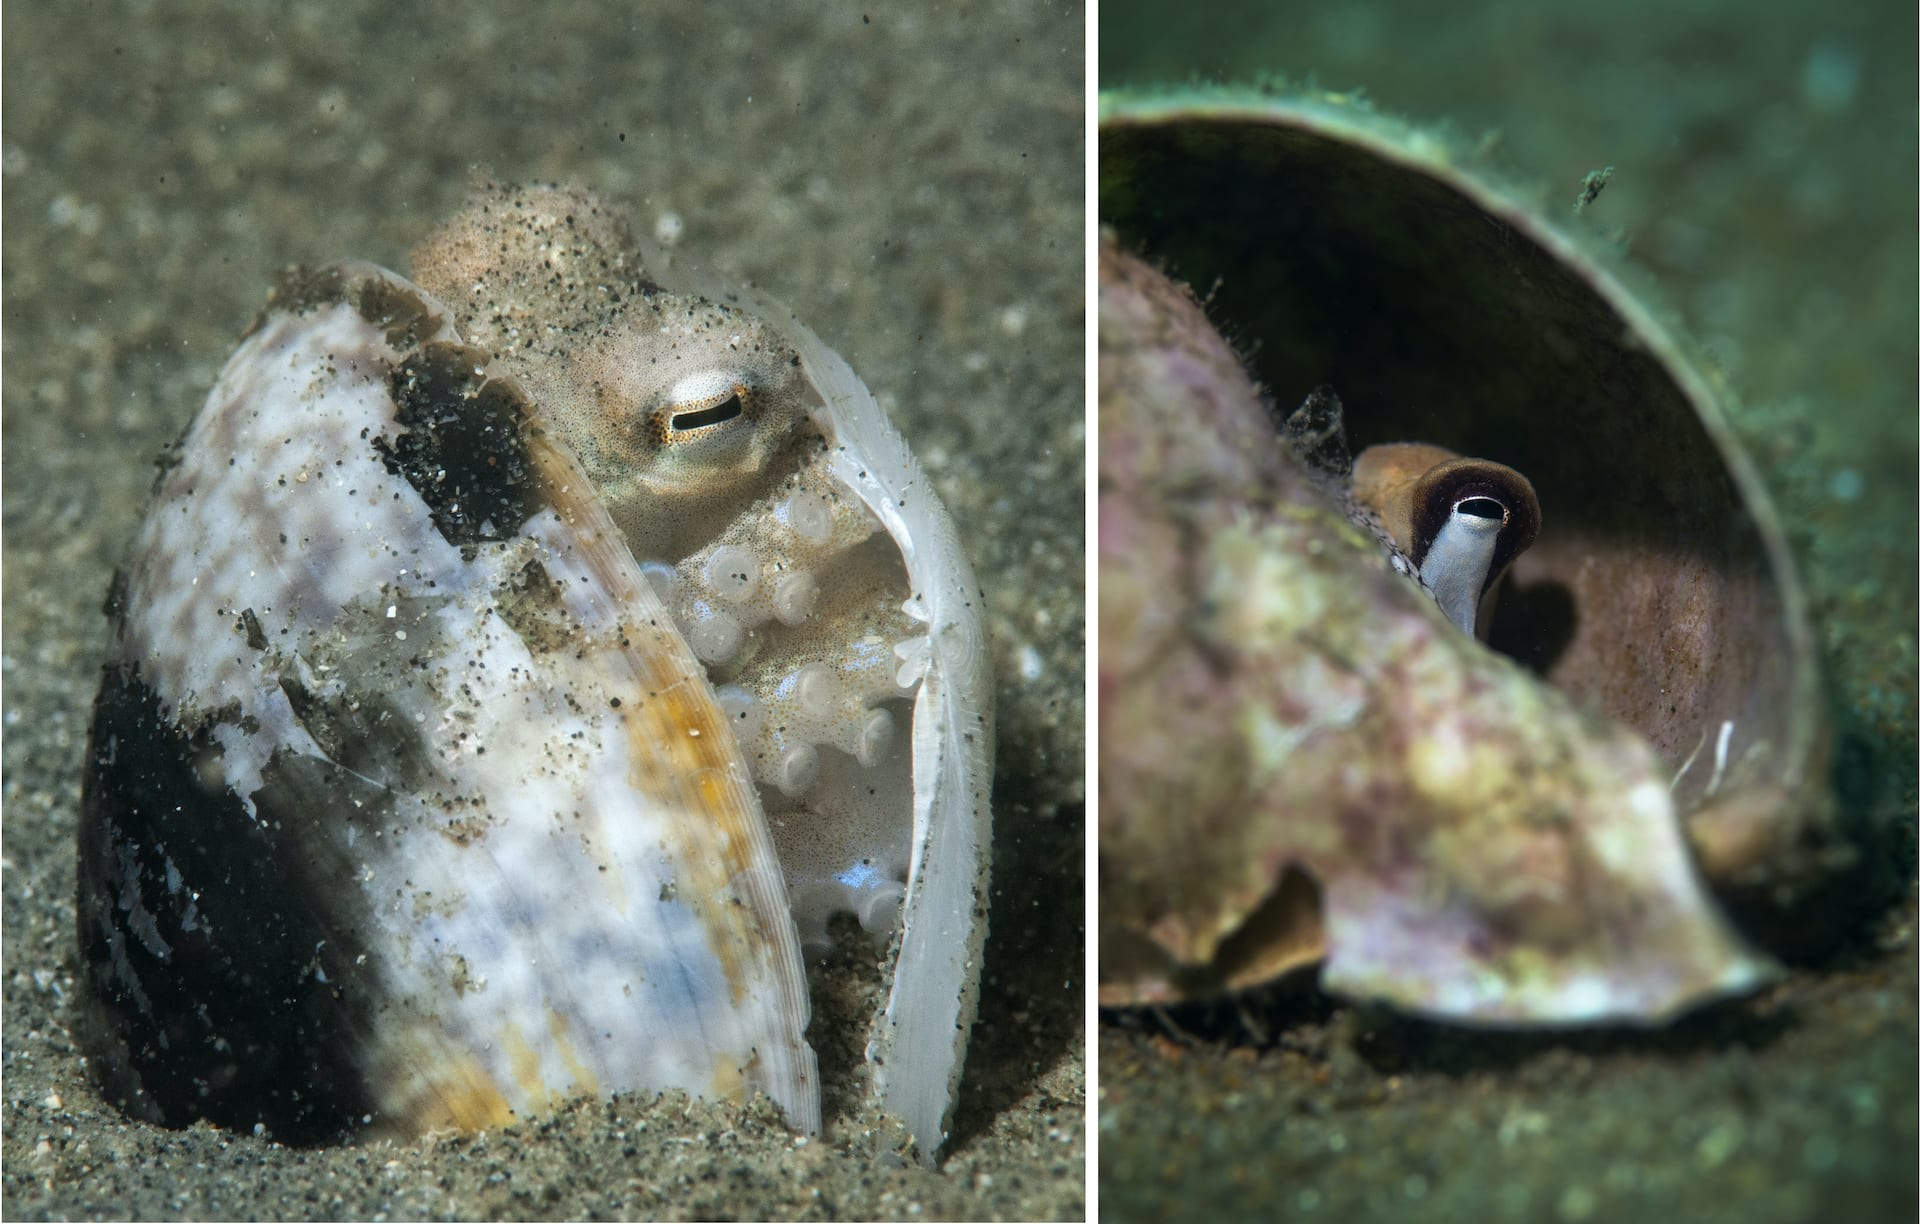 (Left) Coconut octopuses (Amphioctopus marginatus)  often use abandoned coconut shells as defensive fortresses to hide in or protect themselves from predators. They also use empty clam or conch shells. (Right) An octopus peeps out of a conch shell that it has taken refuge in. Photos: Umeed Mistry